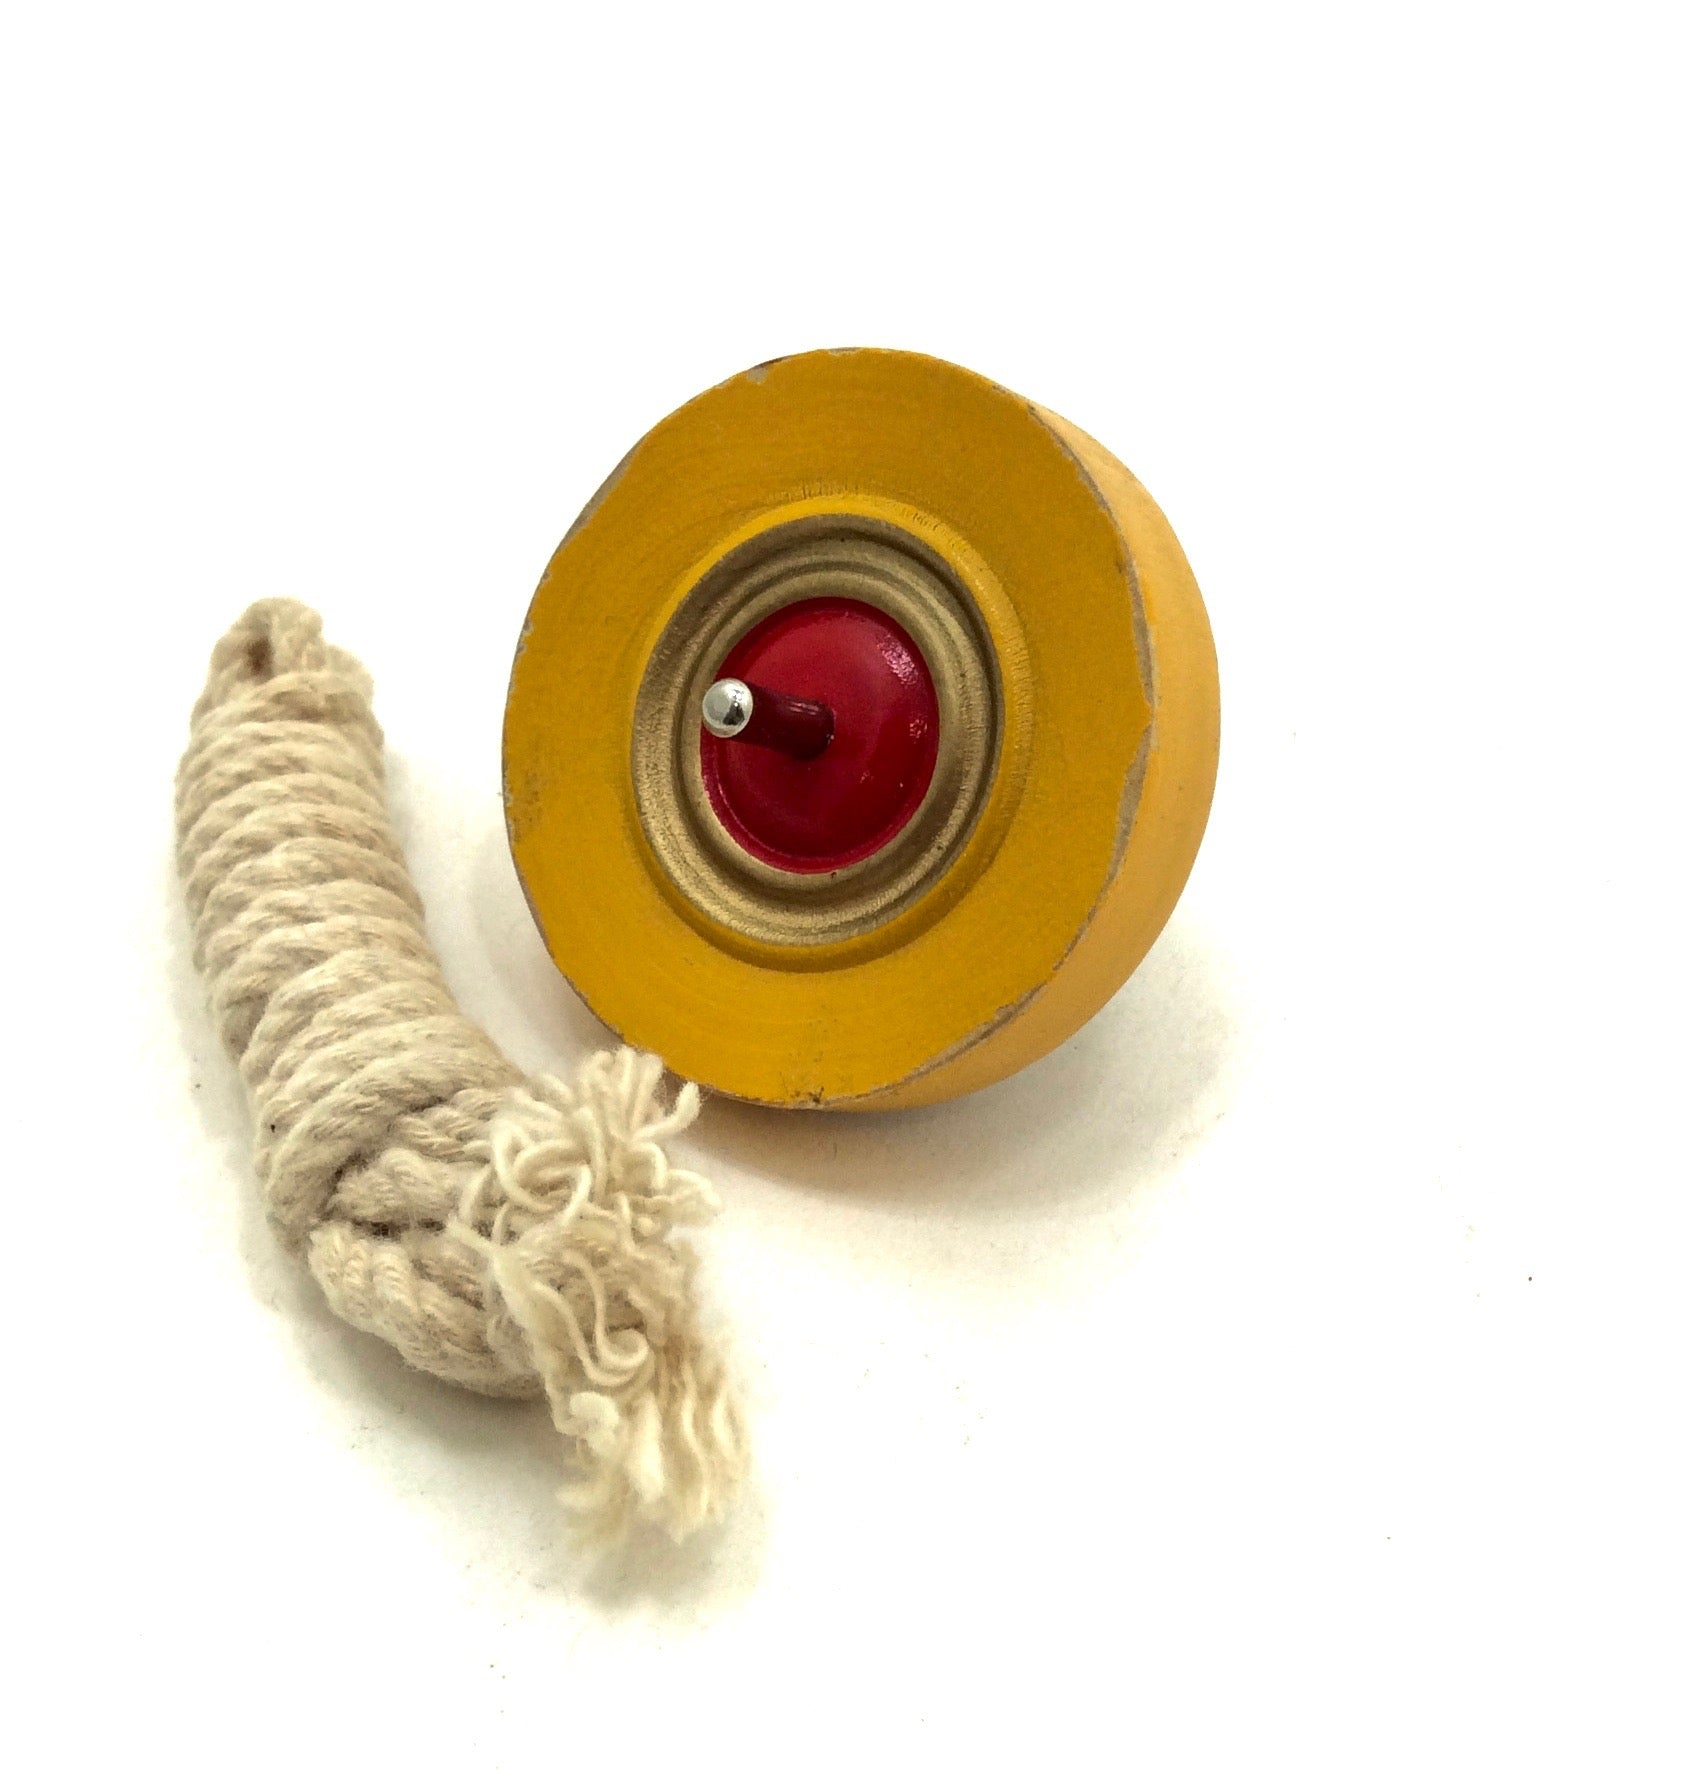 Japanese Traditional Flying Spinning Top with Cord  | Vintage Yo-yo Spinning Koma